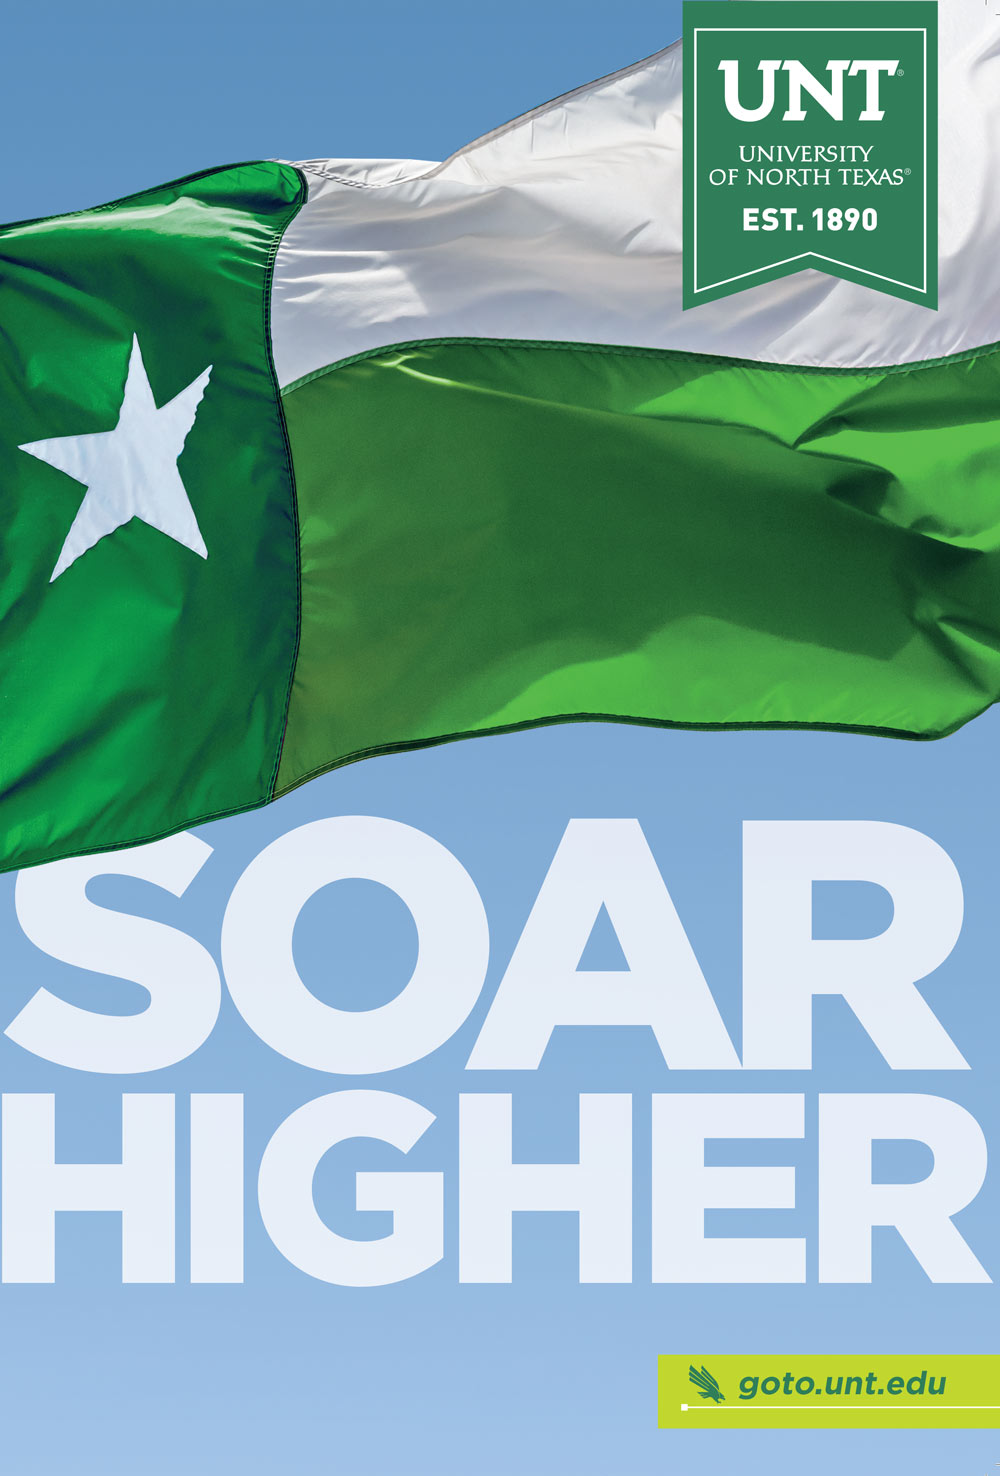 Soar Higher Viewbook cover